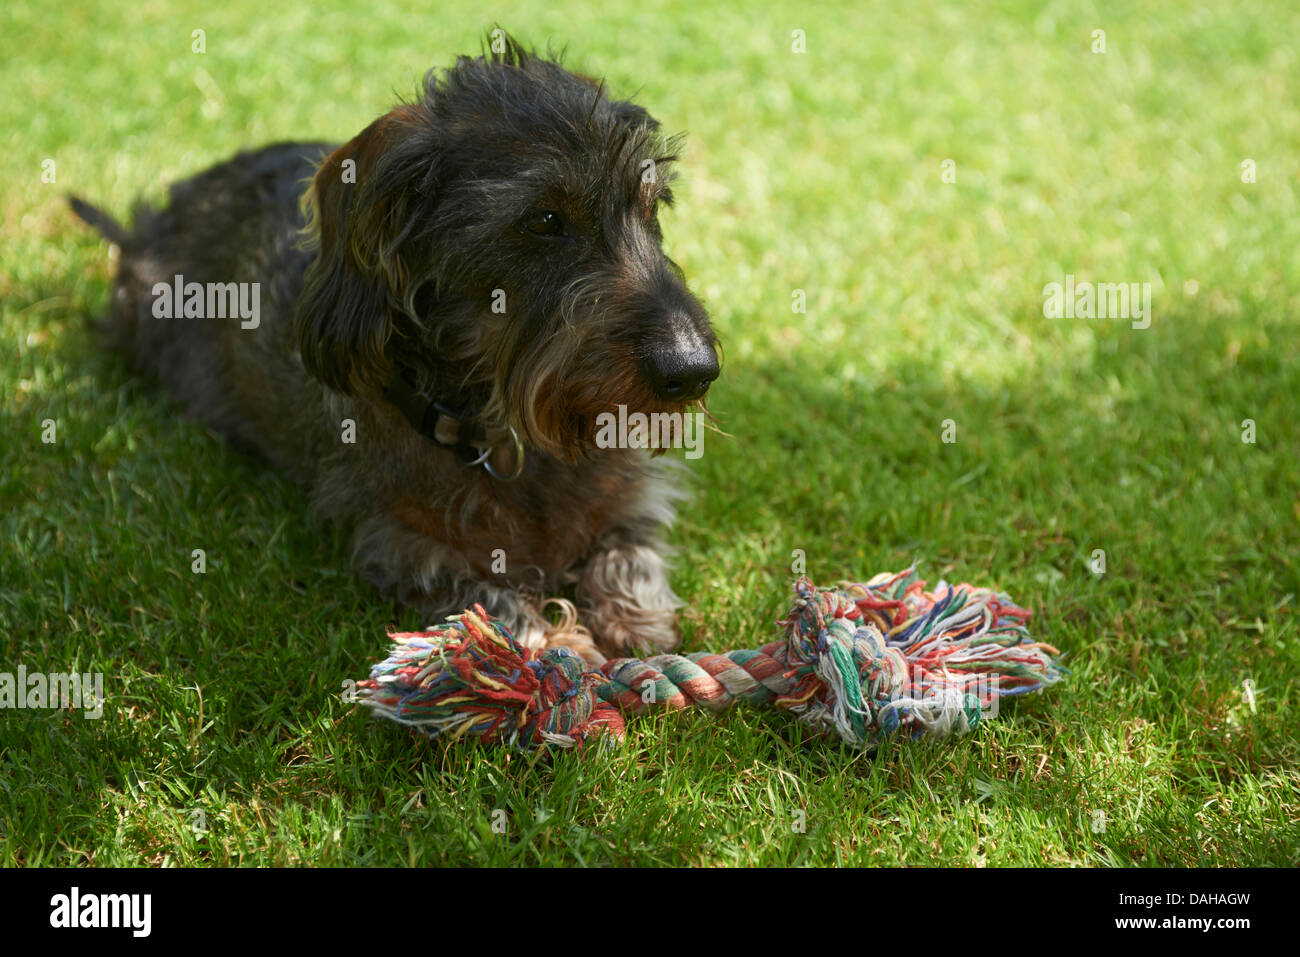 Wire-haired Dachshund (Canis lupus familiaris) lying on meadow - Stock Image